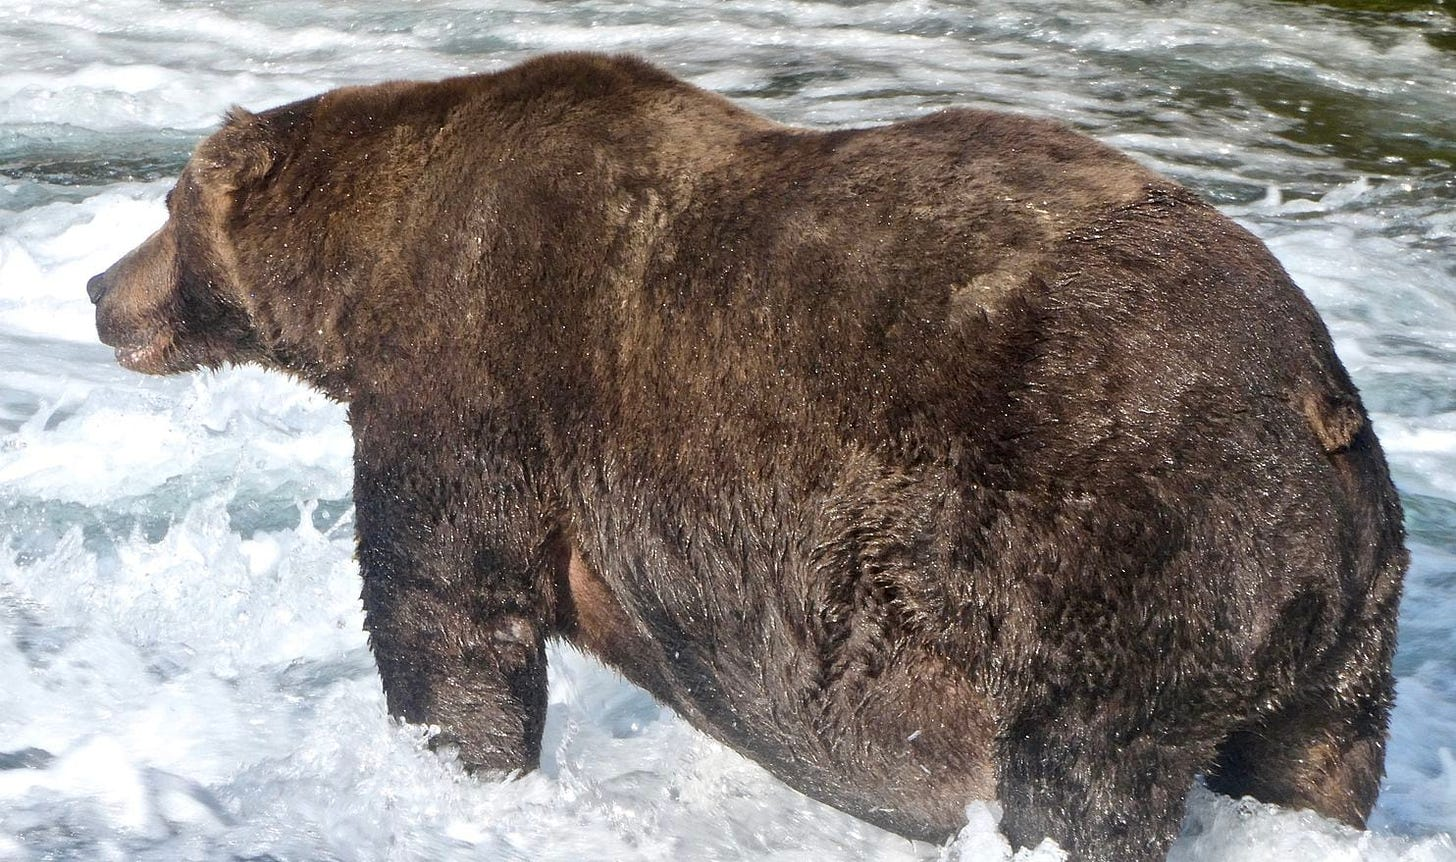 A fat brown bear standing in a river, viewed from behind.